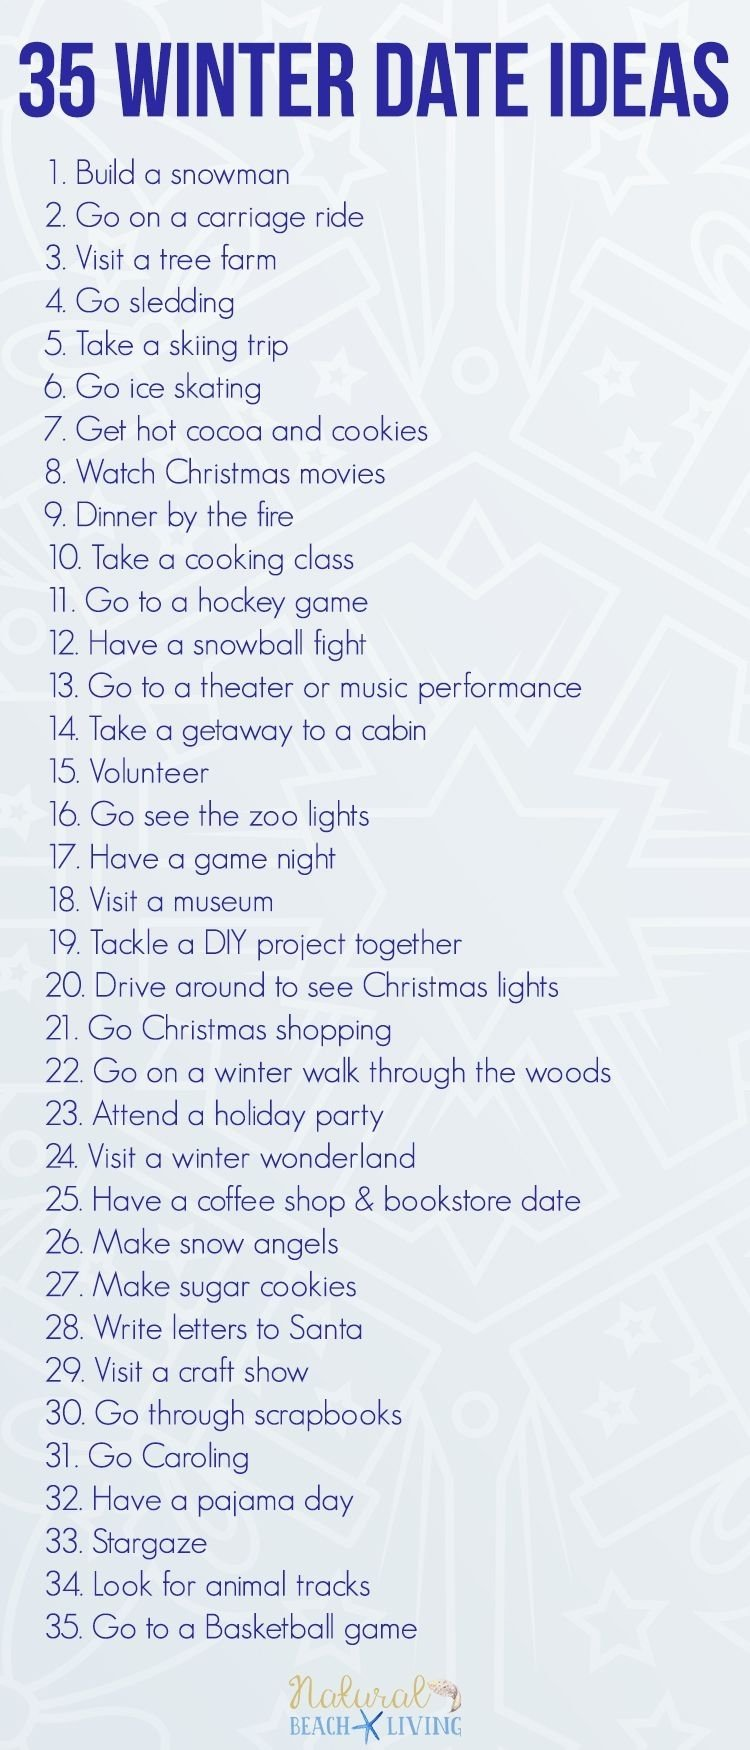 35 fun winter date ideas you can do on a budget | teenage couples